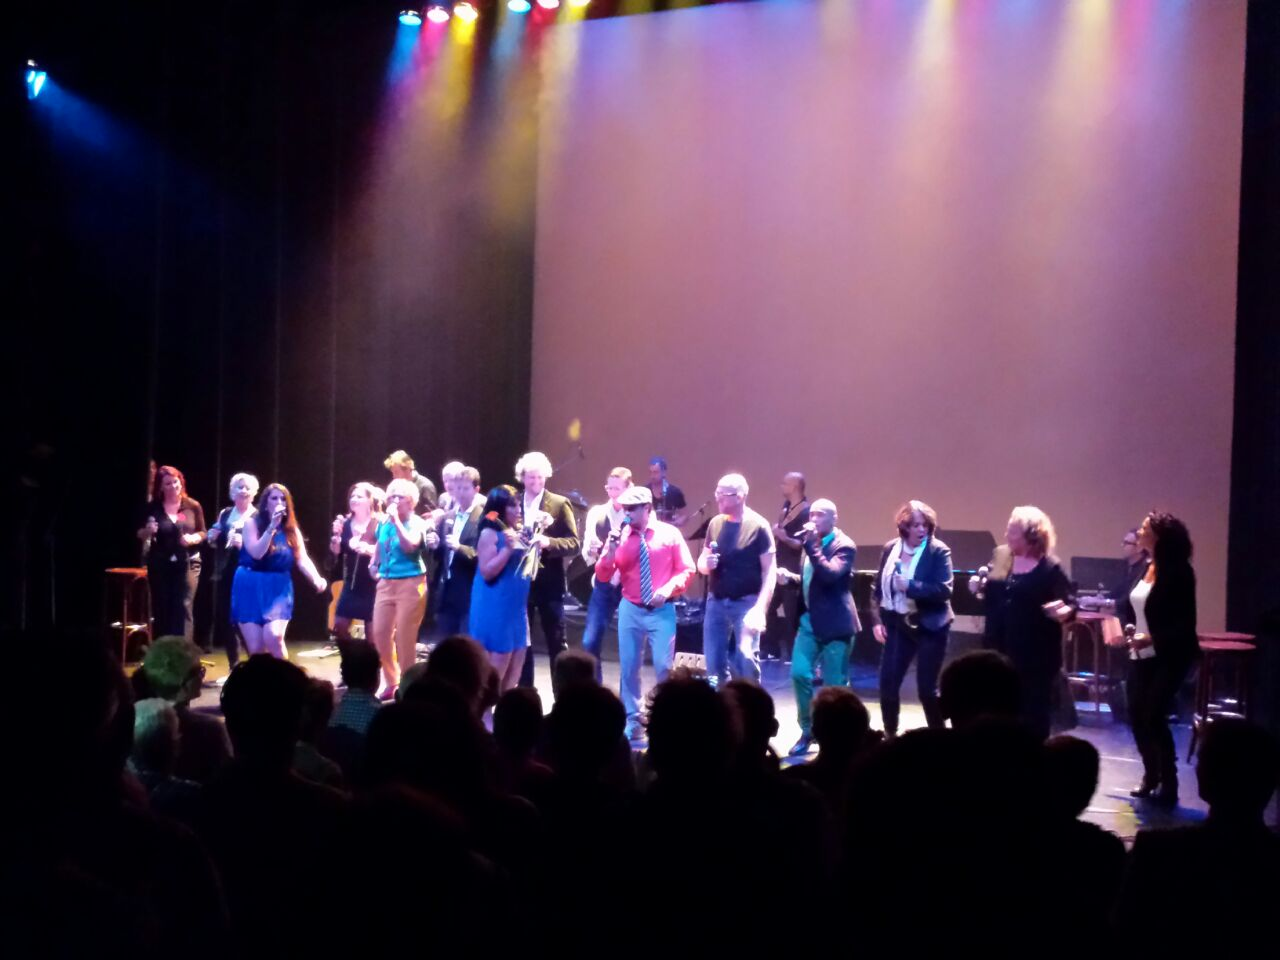 Sounds-of-Voices-optreden-13-9-2014